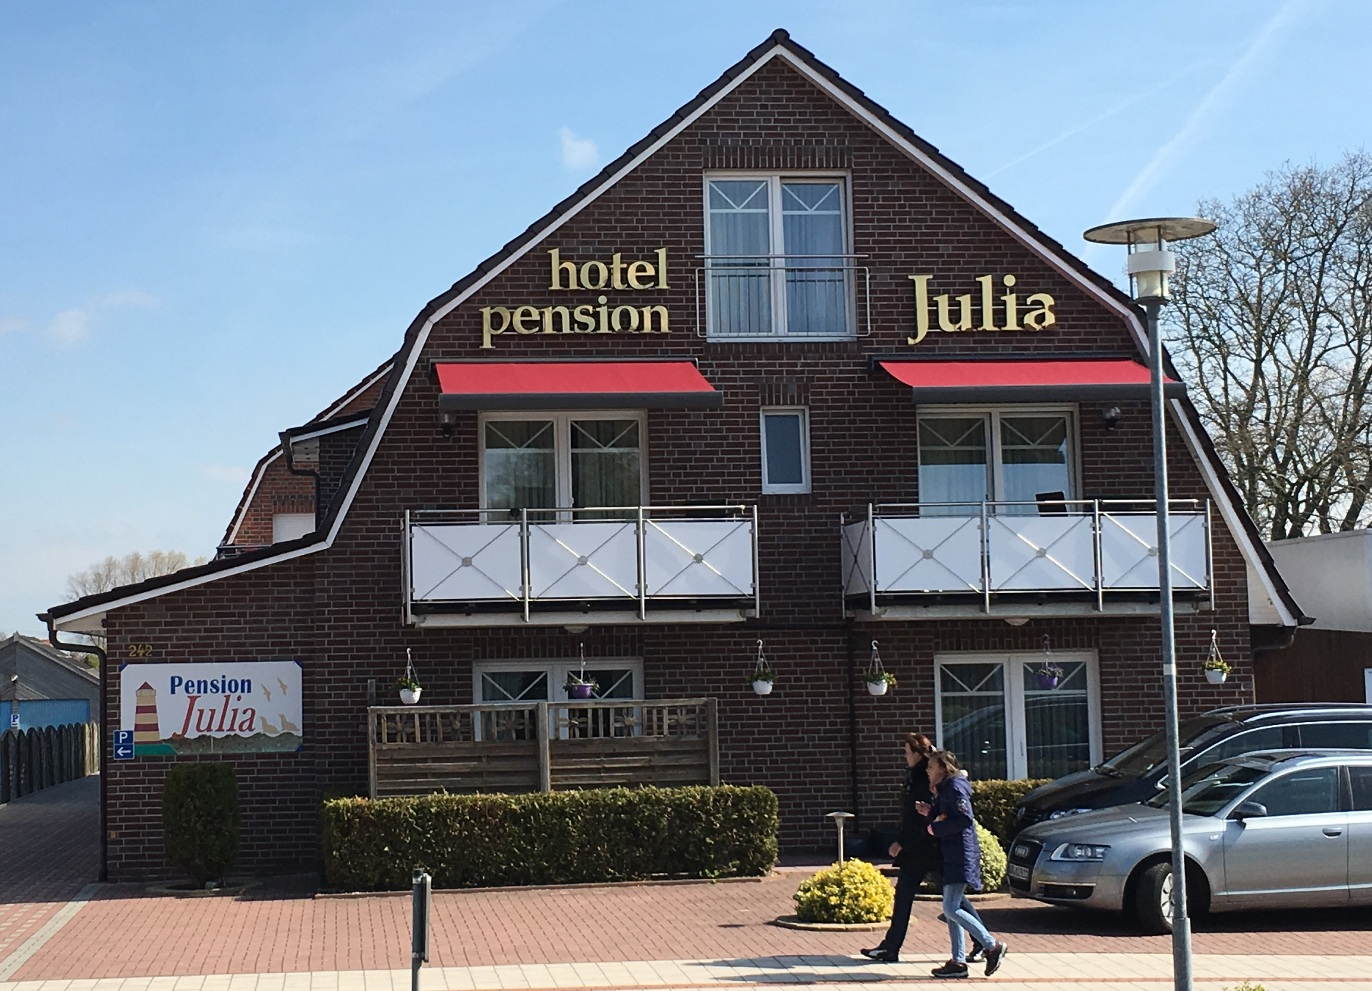 hotel pension julia in nordseeheilbad norddeich. Black Bedroom Furniture Sets. Home Design Ideas